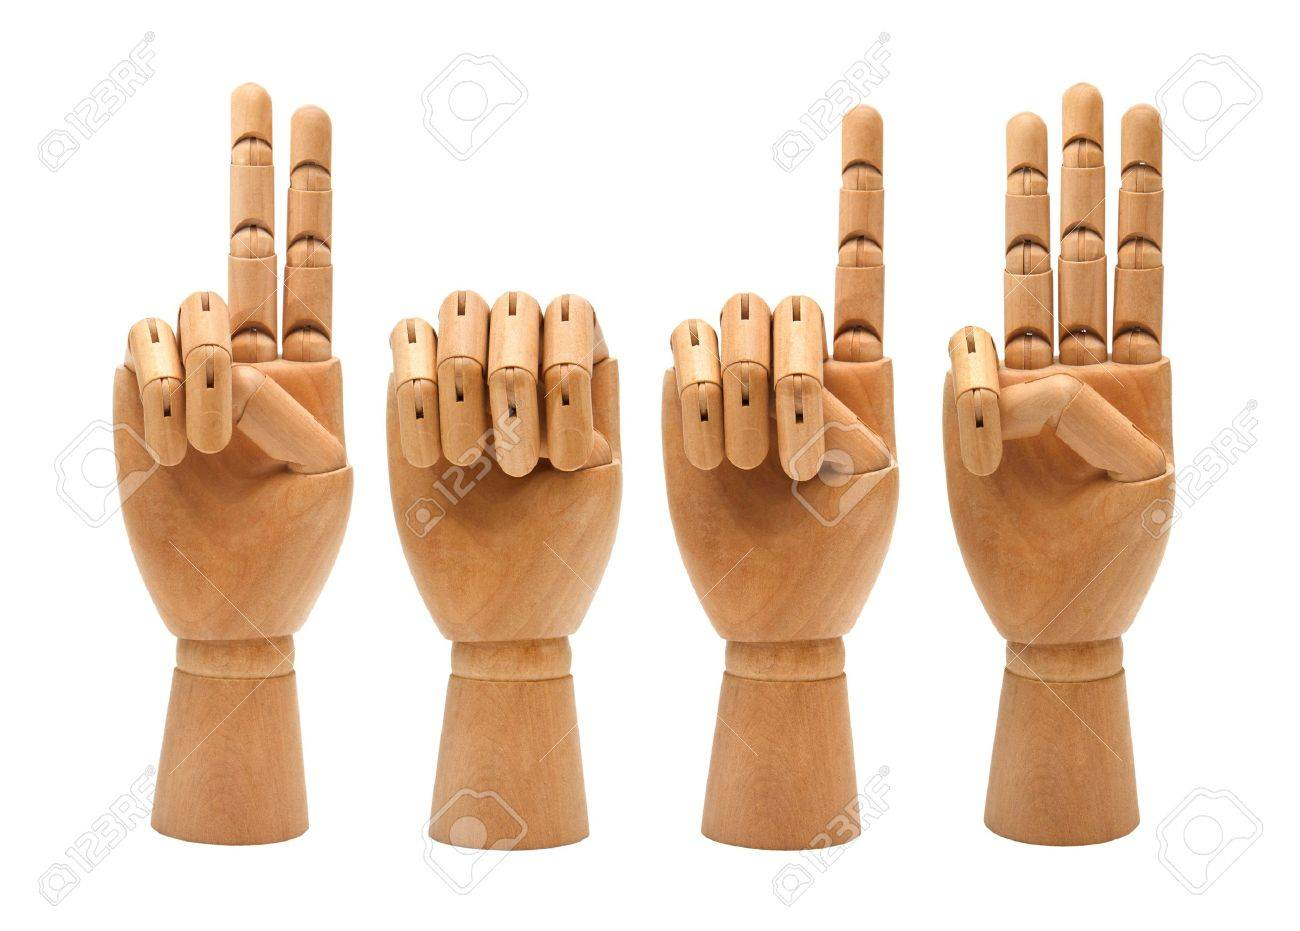 wooden hands forming number 2013 Stock Photo - 13570928